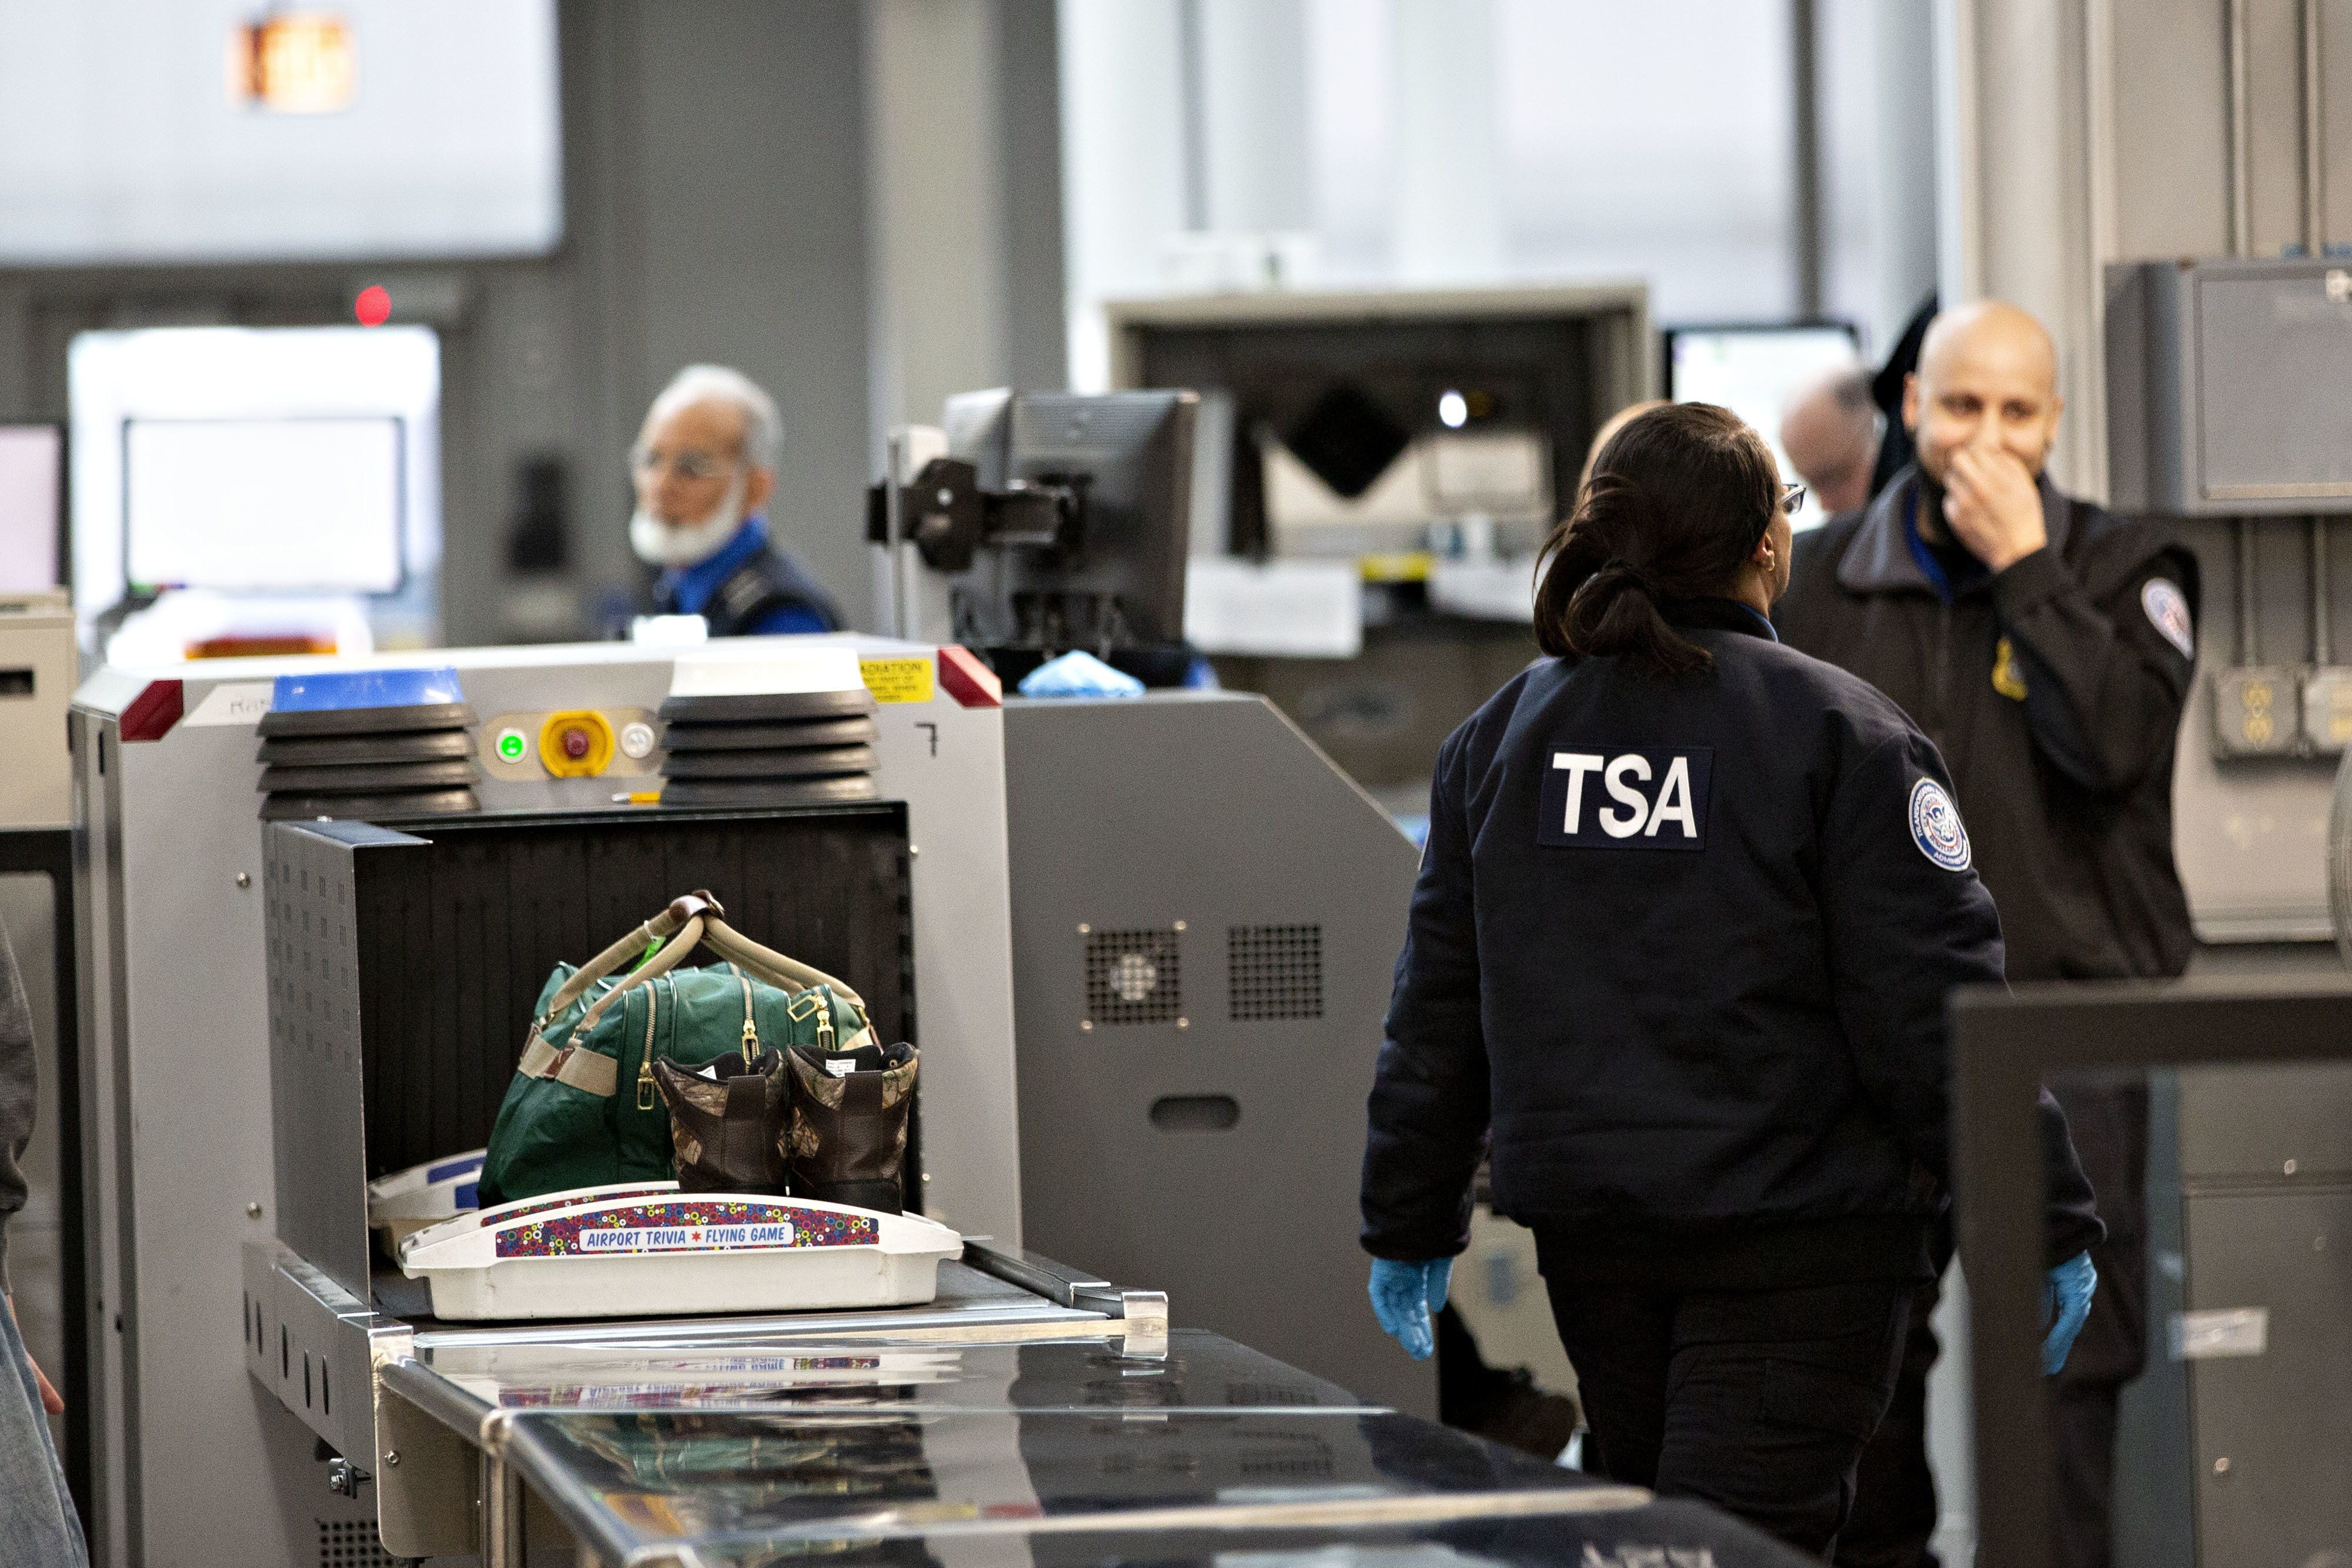 Transportation Security Administration (TSA) agents work at a check-point inside O'Hare International Airport (ORD) in Chicago, Illinois, U.S., on Tuesday, Jan. 8, 2019. With screeners already calling in sick in larger-than-normal numbers, U.S. airports are girding for disruptions next week if the partial government shutdown continues and TSA officers miss their first paycheck. Photographer: Daniel Acker/Bloomberg via Getty Images